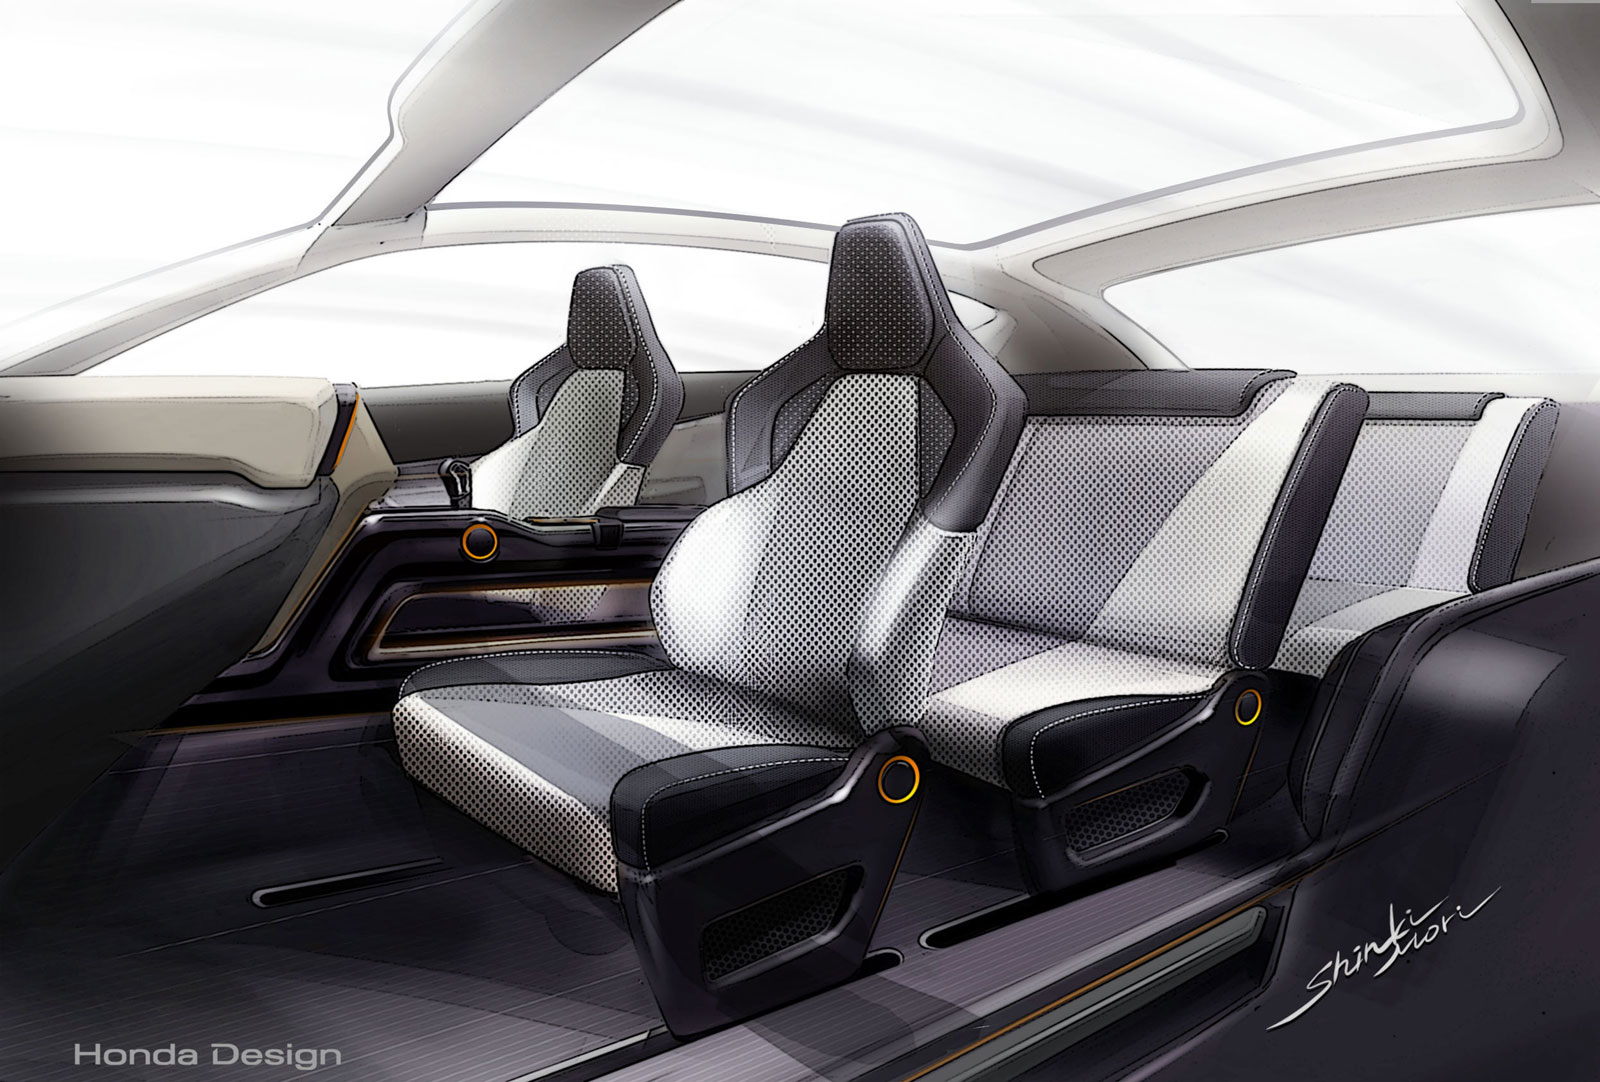 honda vision xs 1 concept interior design sketch car body design. Black Bedroom Furniture Sets. Home Design Ideas